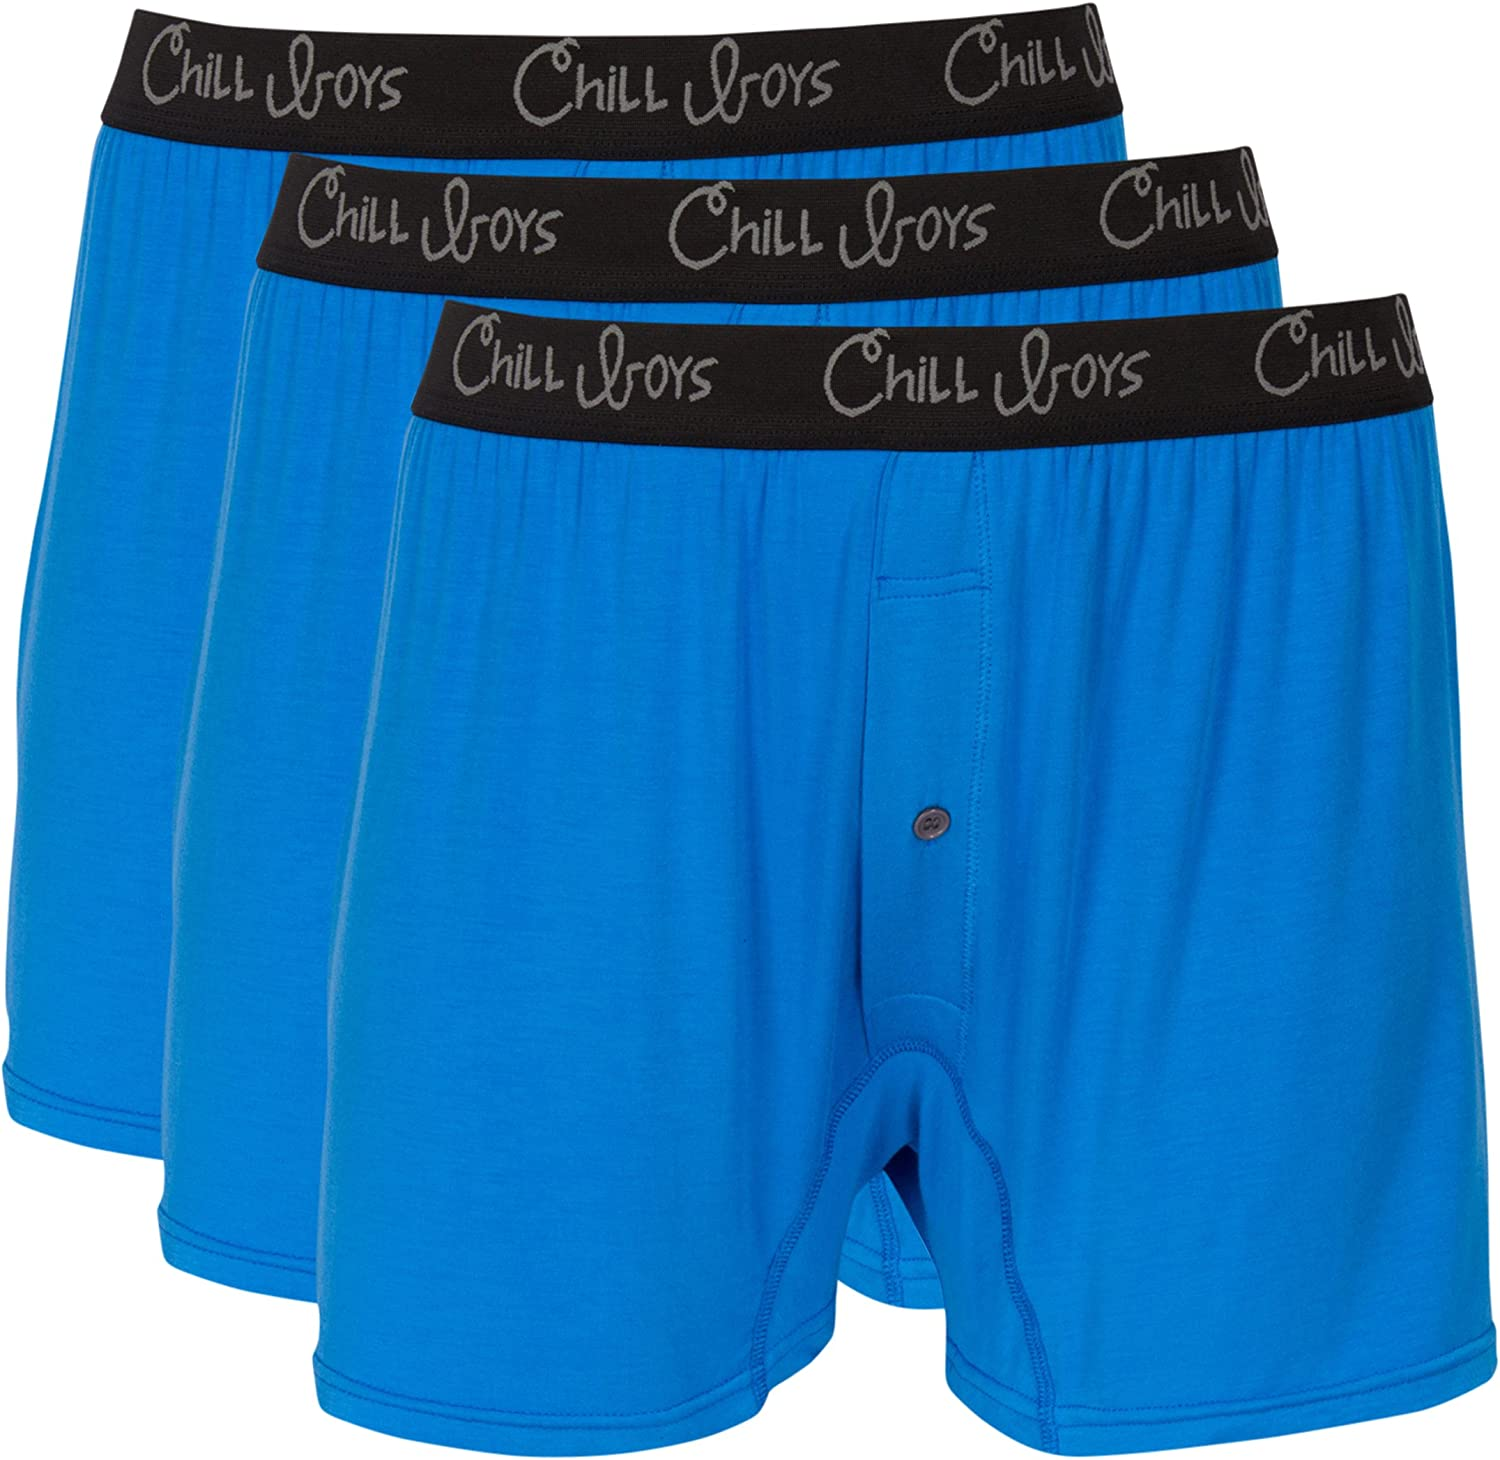 Soft Bamboo Mens Boxers 3 Pack - Cool, Comfortable Bamboo Underwear by Chill Boys